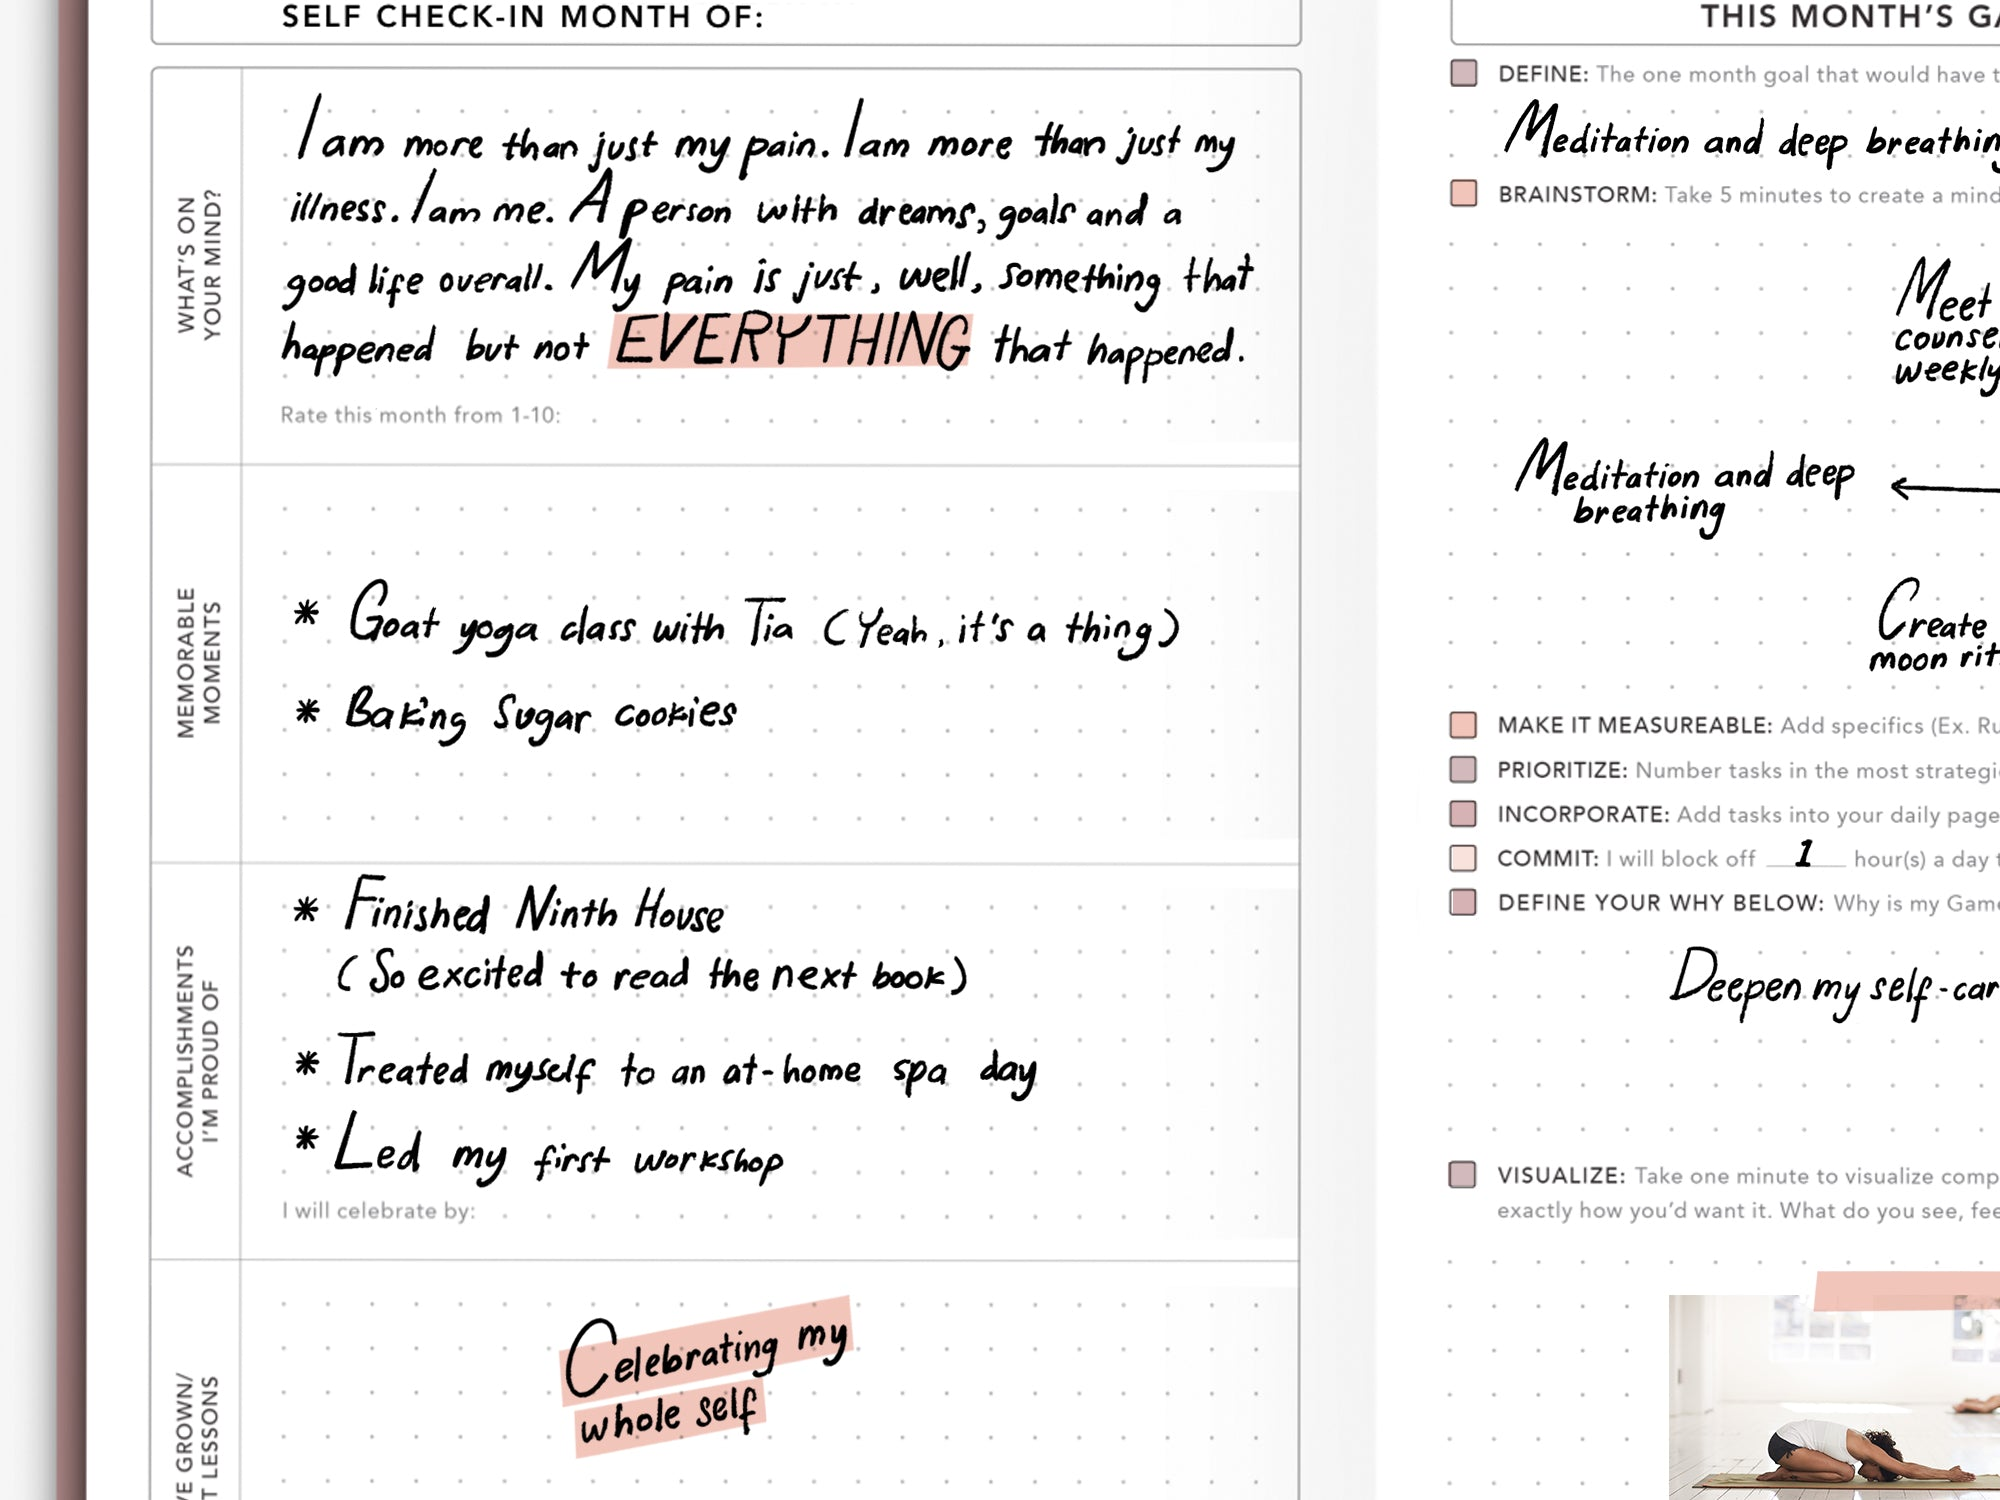 Use the Self Check In pages of your Passion Planner Daily to reflect on all the good things that have happened.